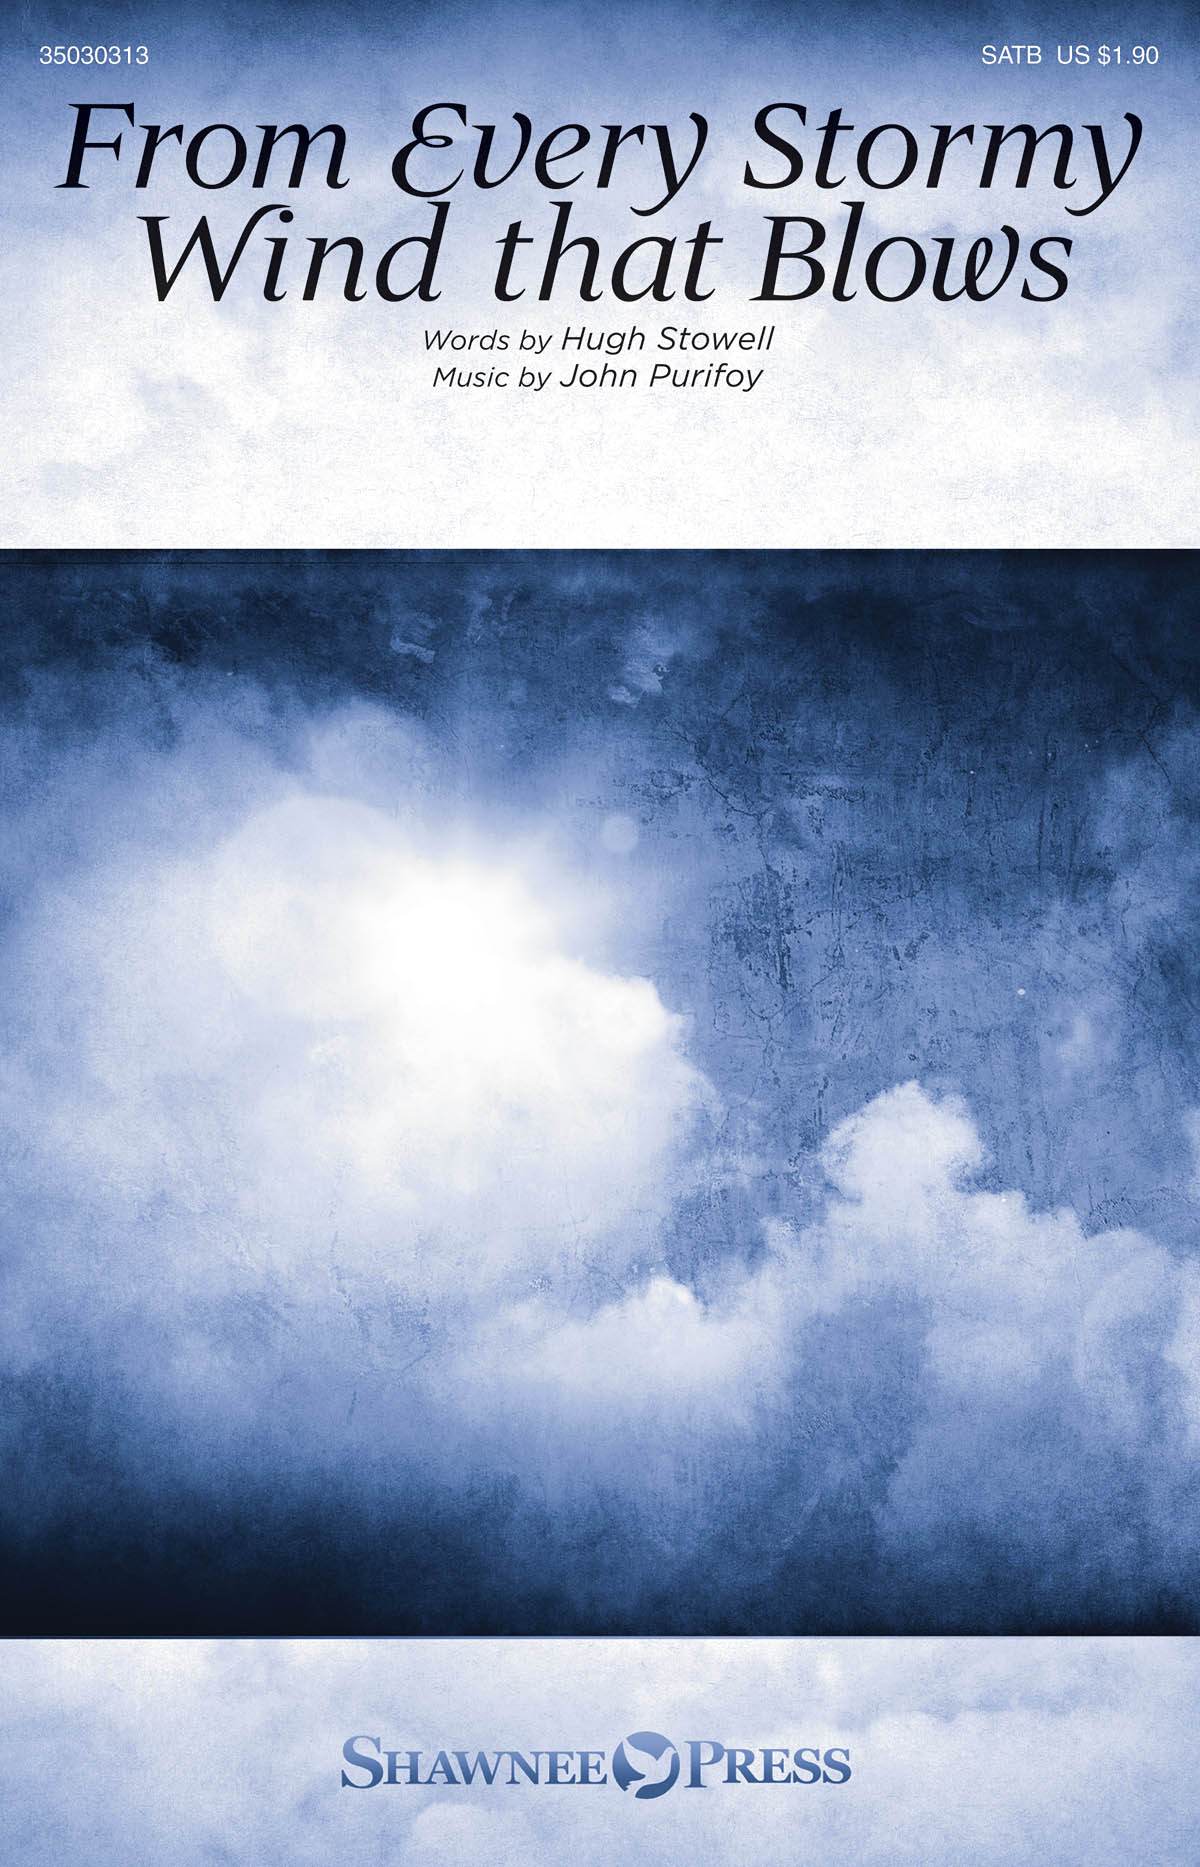 John Purifoy: From Every Stormy Wind that Blows: SATB: Vocal Score